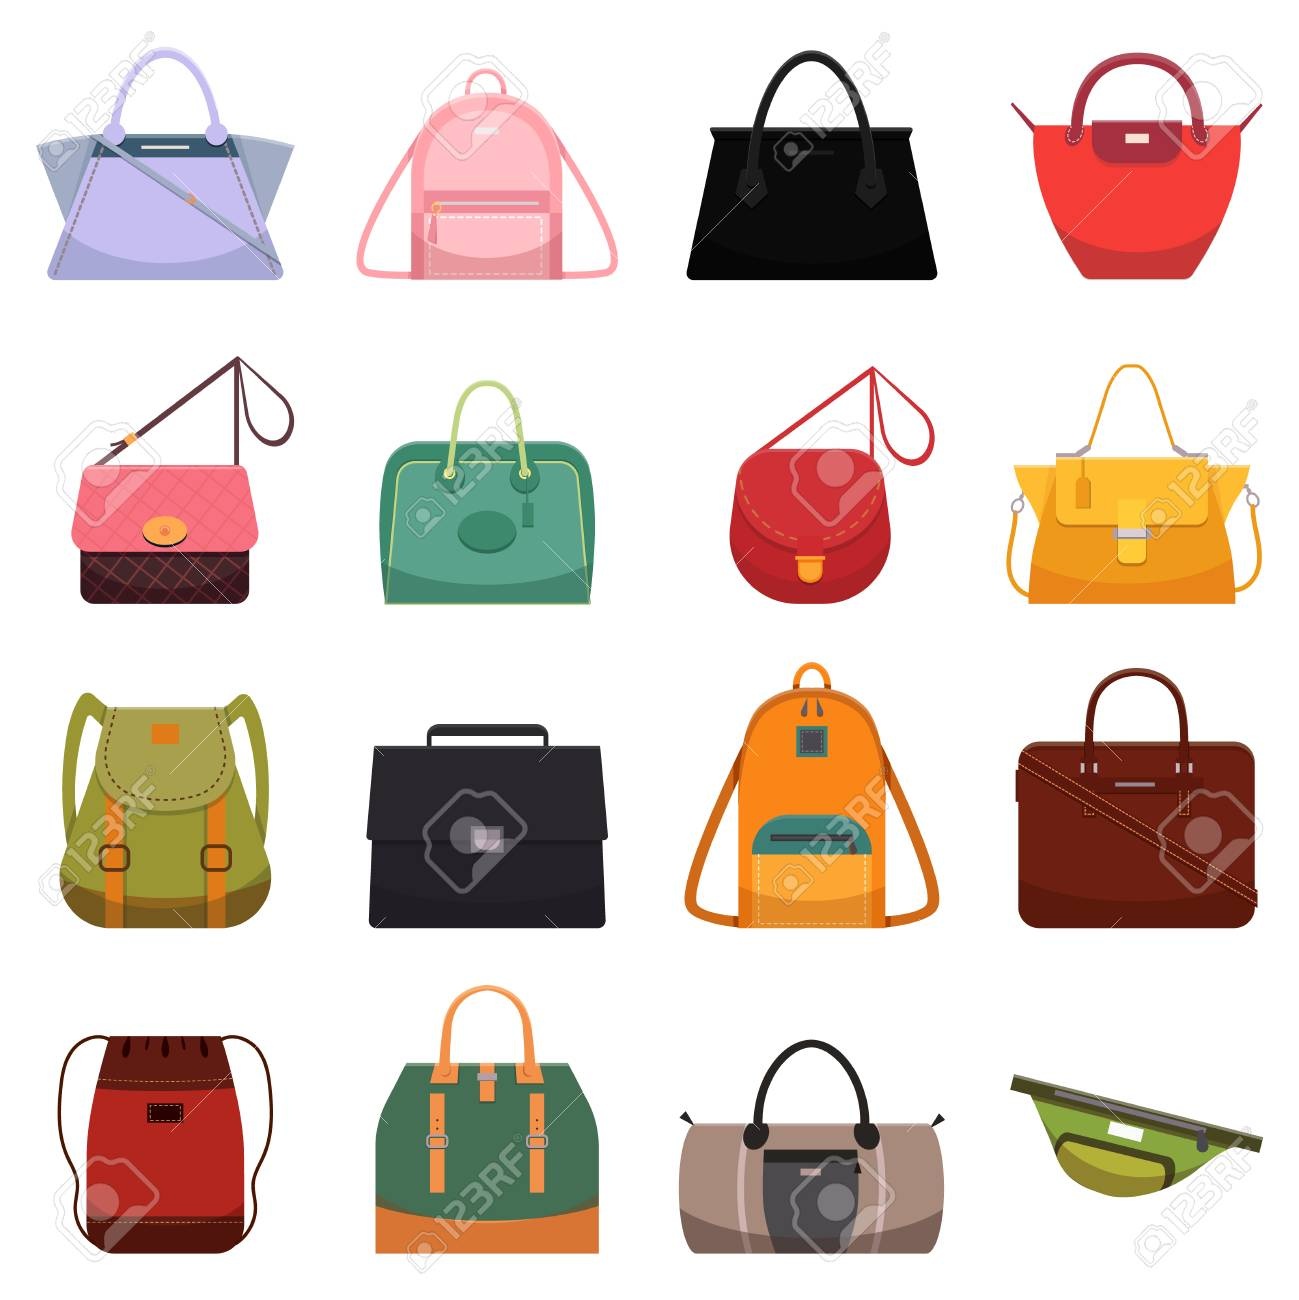 0d9bae704ac Woman leather casual bags, handbag satchel reticule purse backpack..